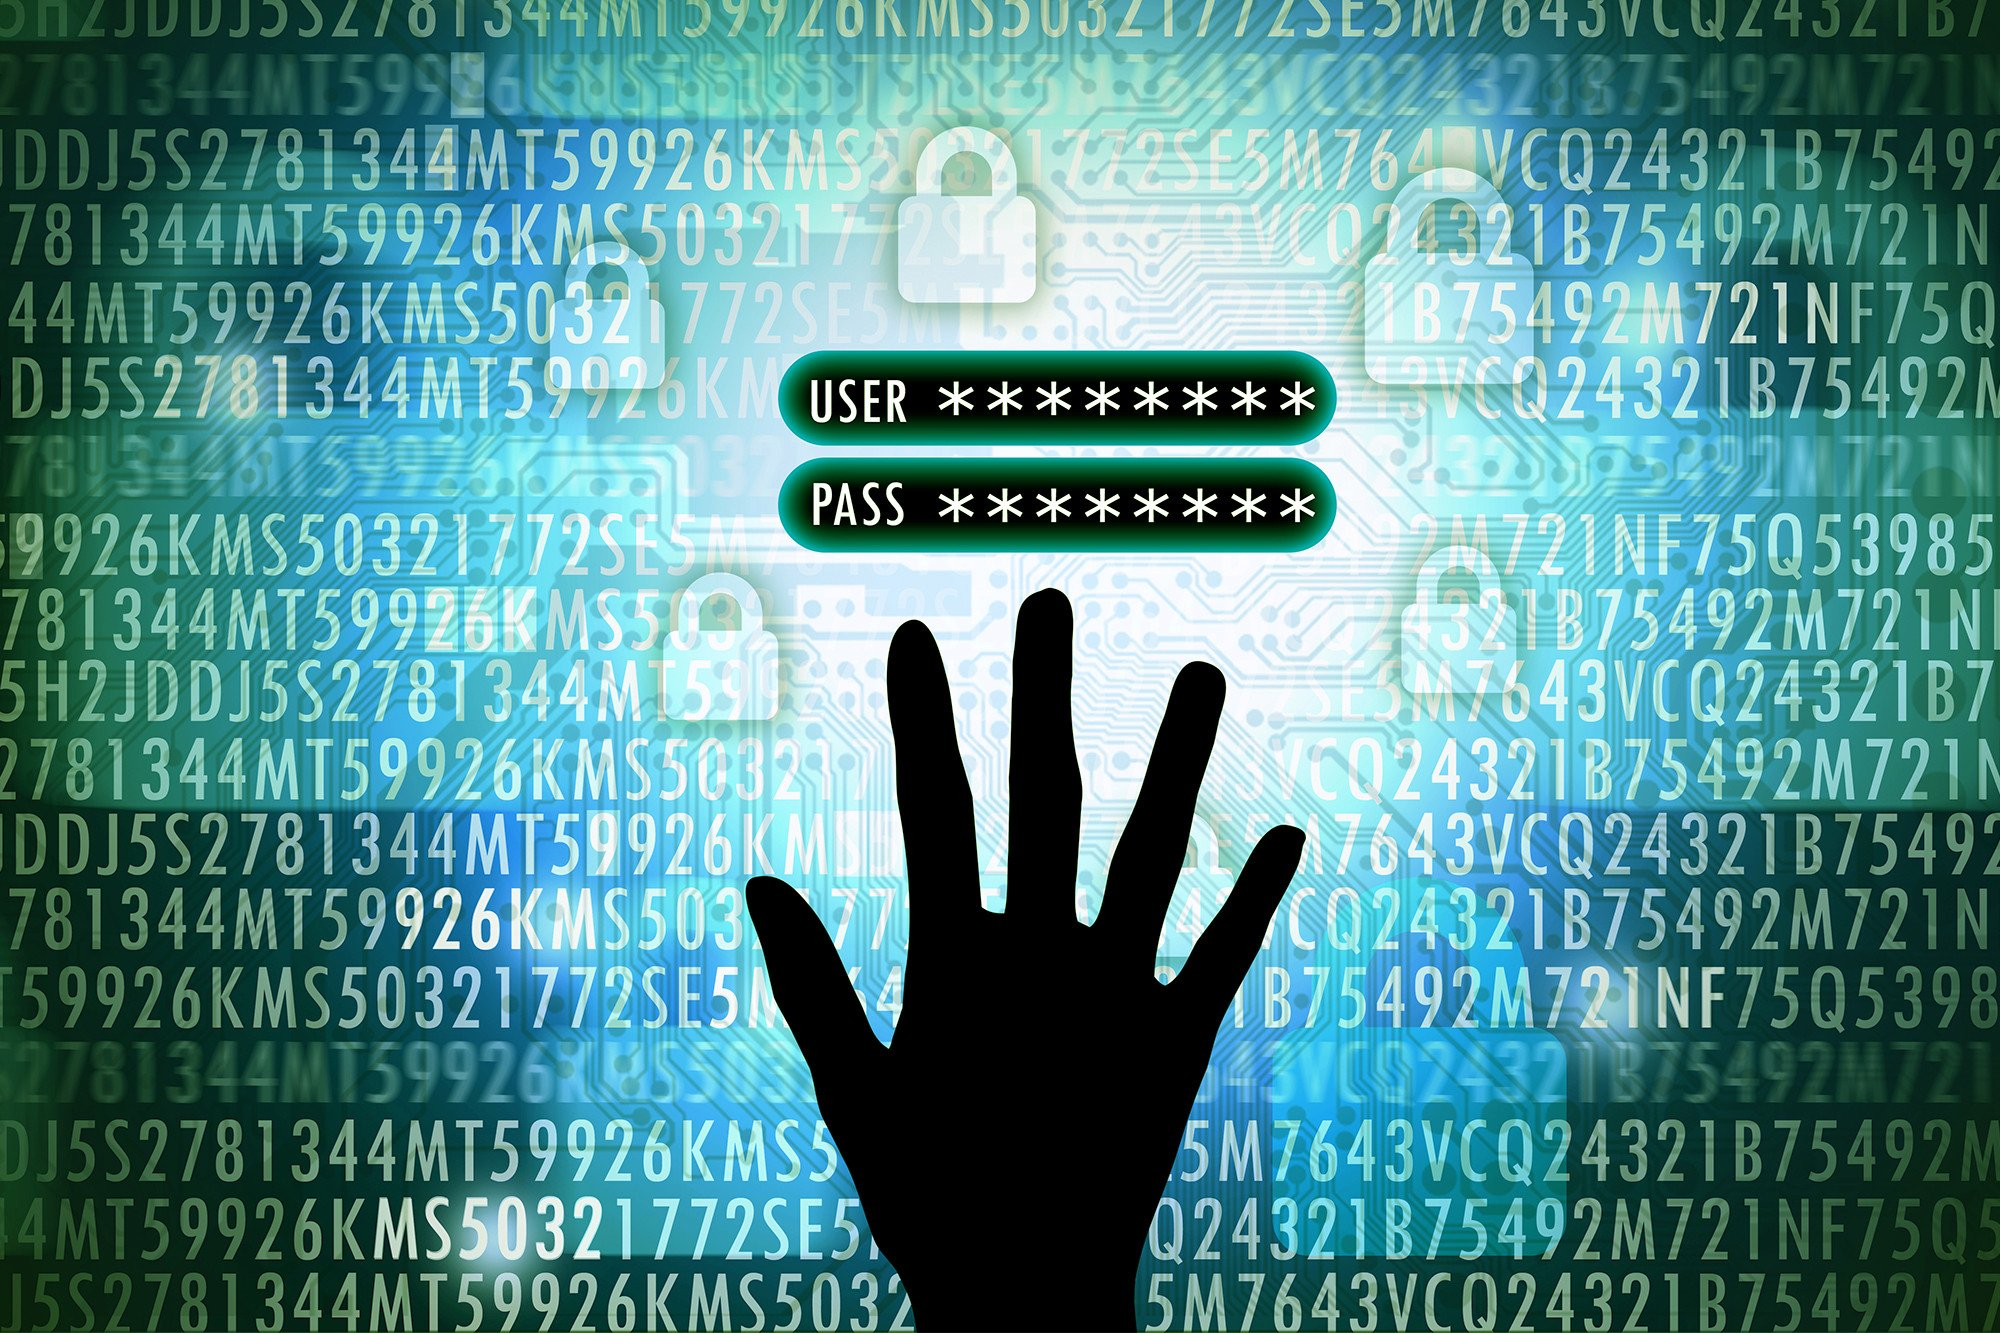 New data breach may have exposed info on every US citizen